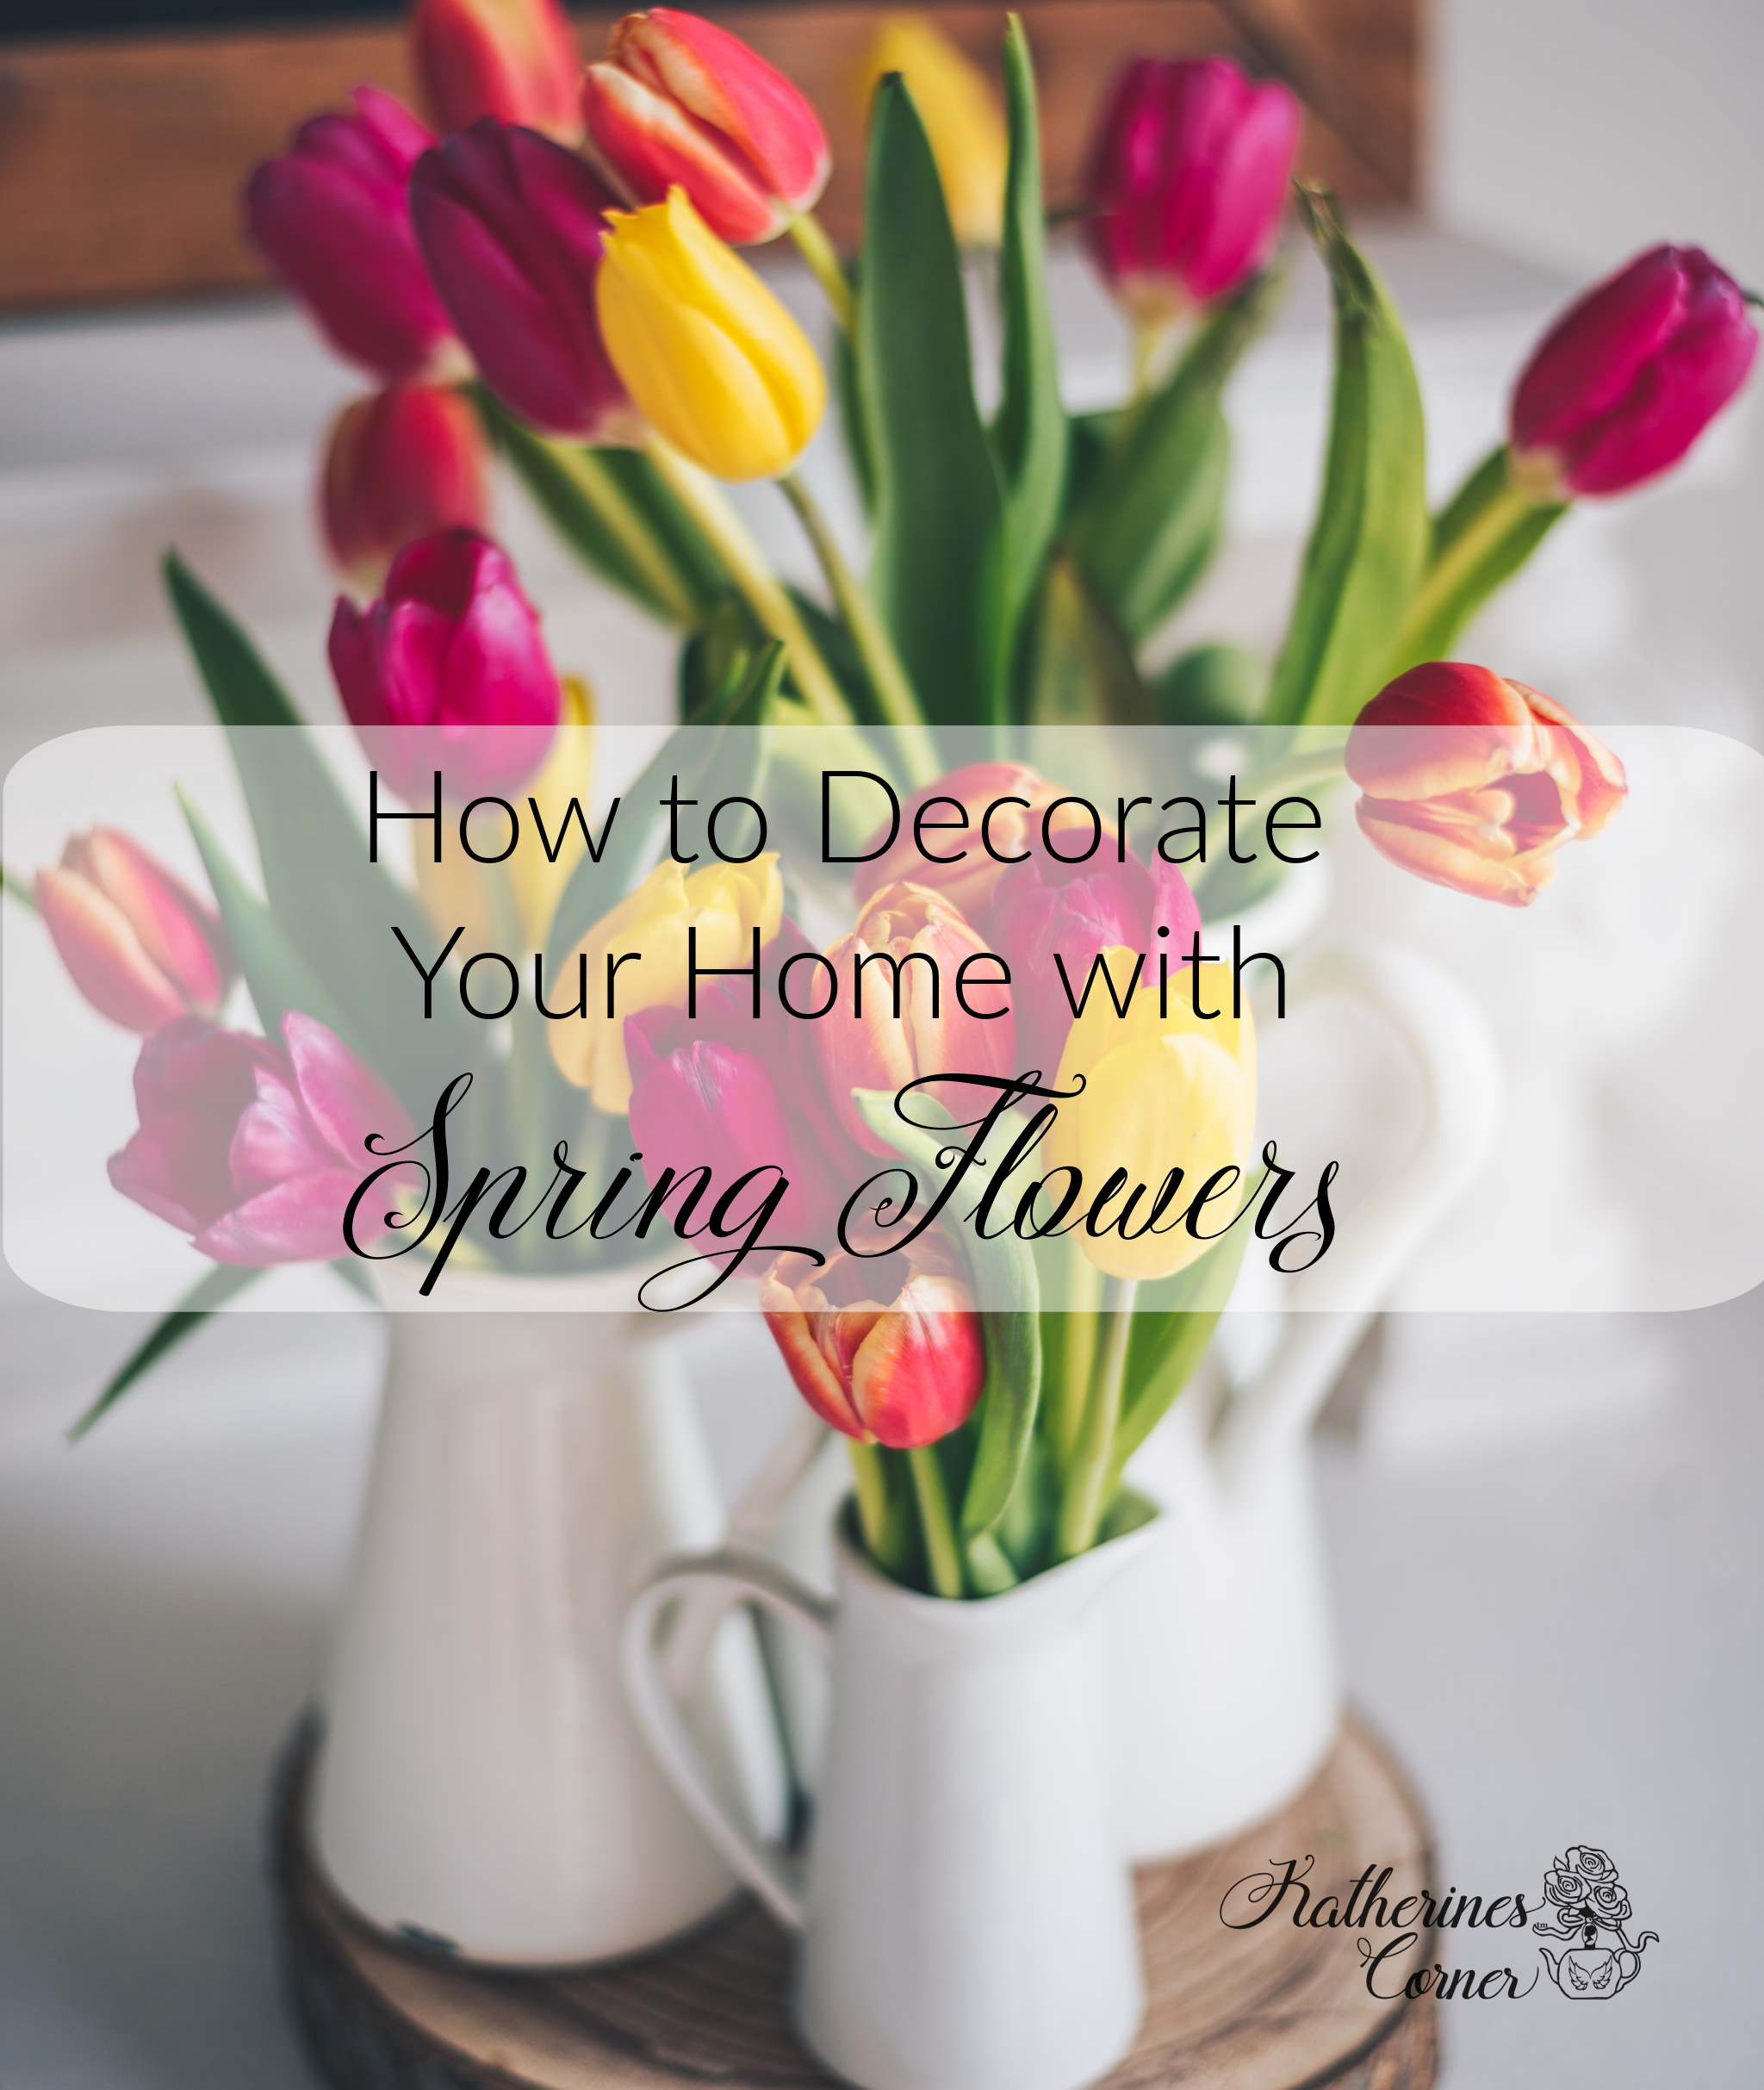 How to Decorate Your Home with Spring Flowers